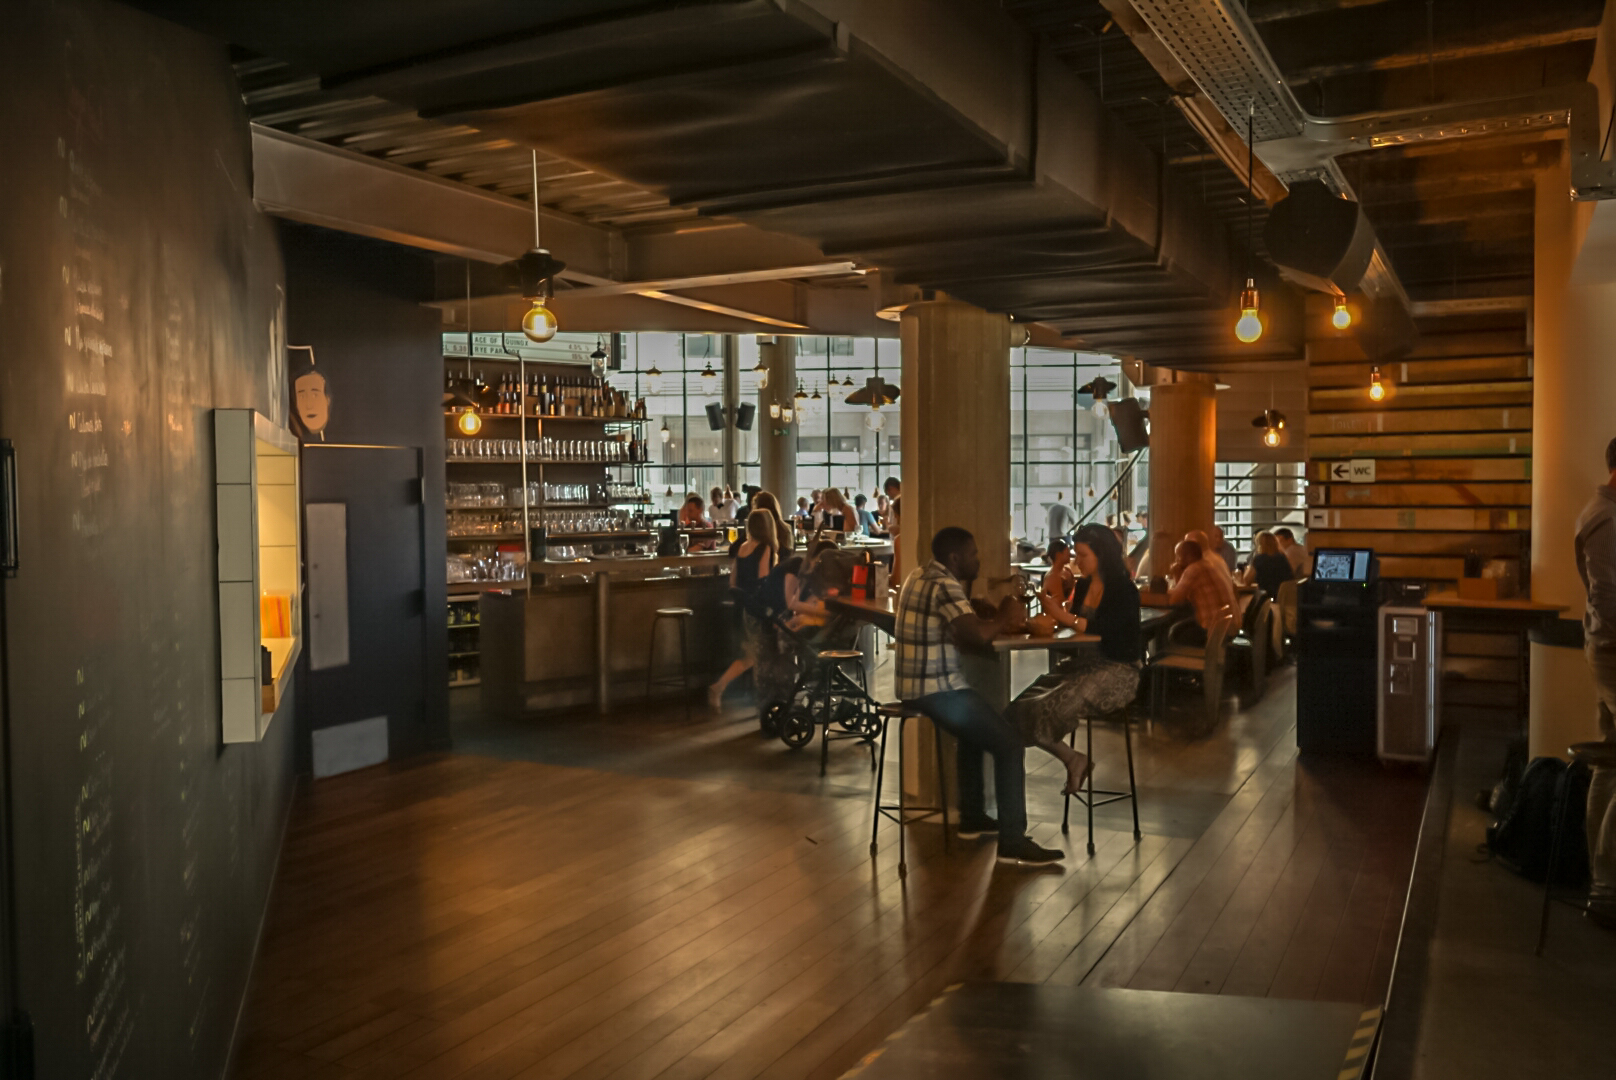 Another view of BrewDog's interior